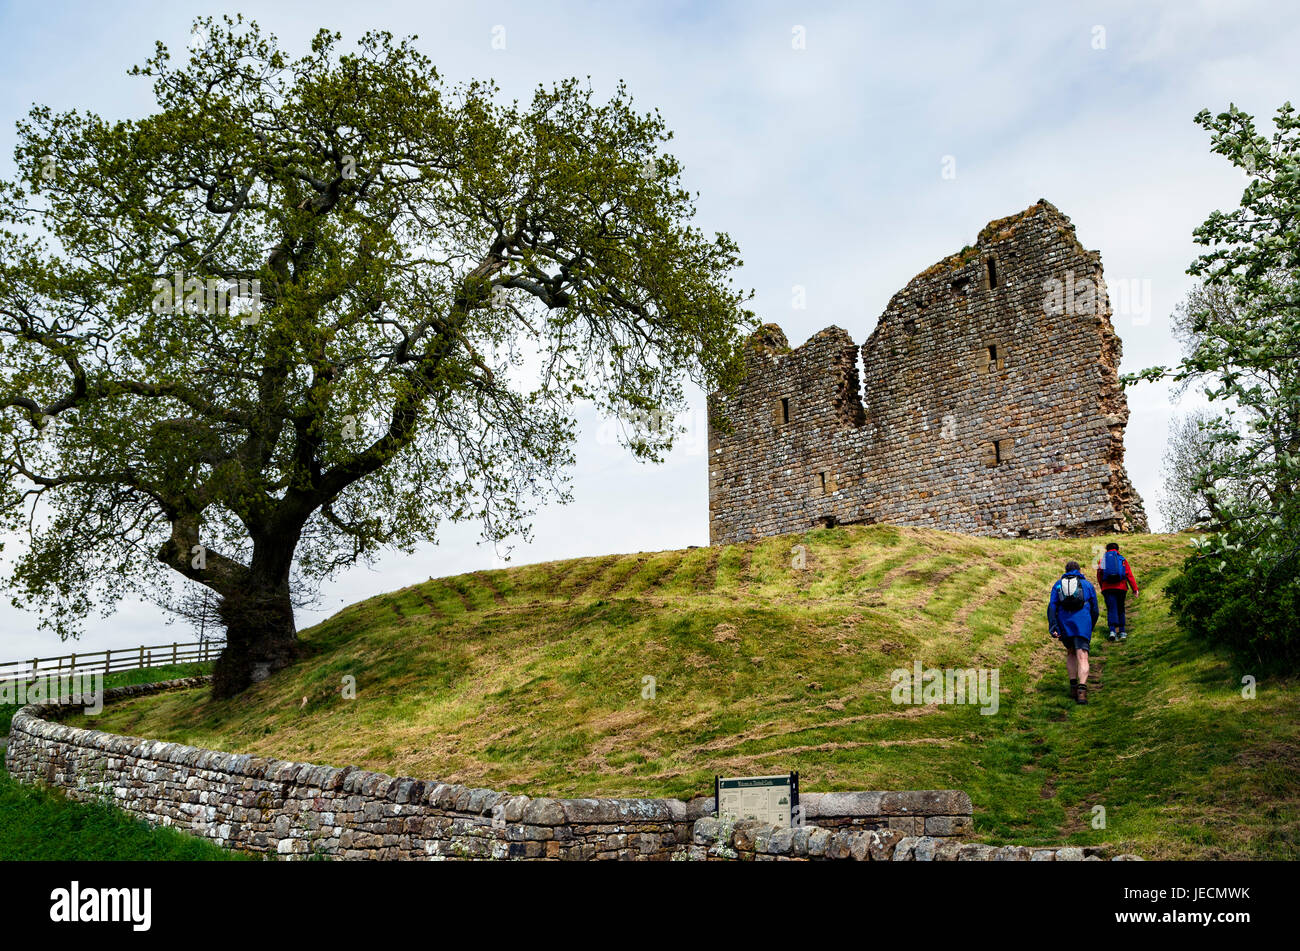 Hikers and ruins of Thirlwall Castle, near Greenhead, Northumberland, England, United Kingdom - Stock Image